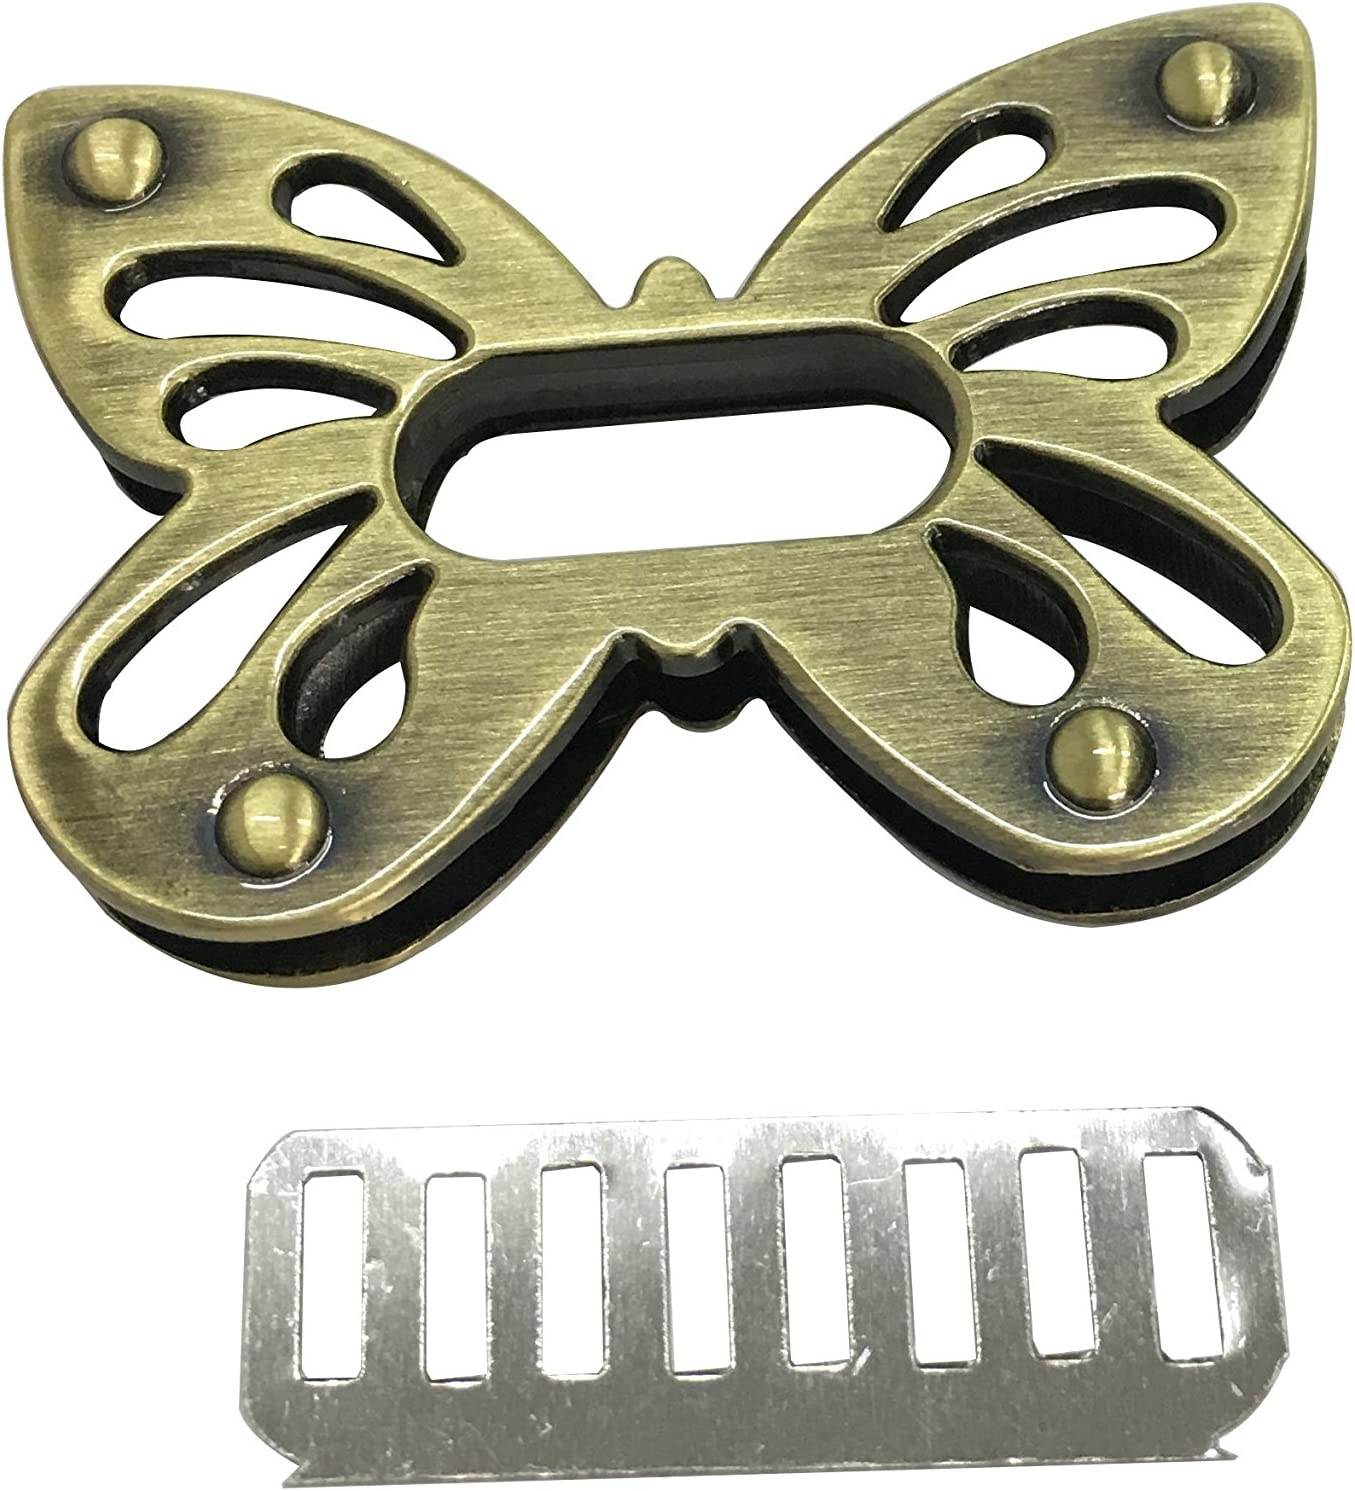 Fashewelry 6 Sets Metal Purse Turn Lock Clutches Closures Light Gold Bees Bird Cat Butterfly Oval Heart Bag Twist Lock Fastener Clasp Hardware for DIY Handbag Leather Craft Making Accessory